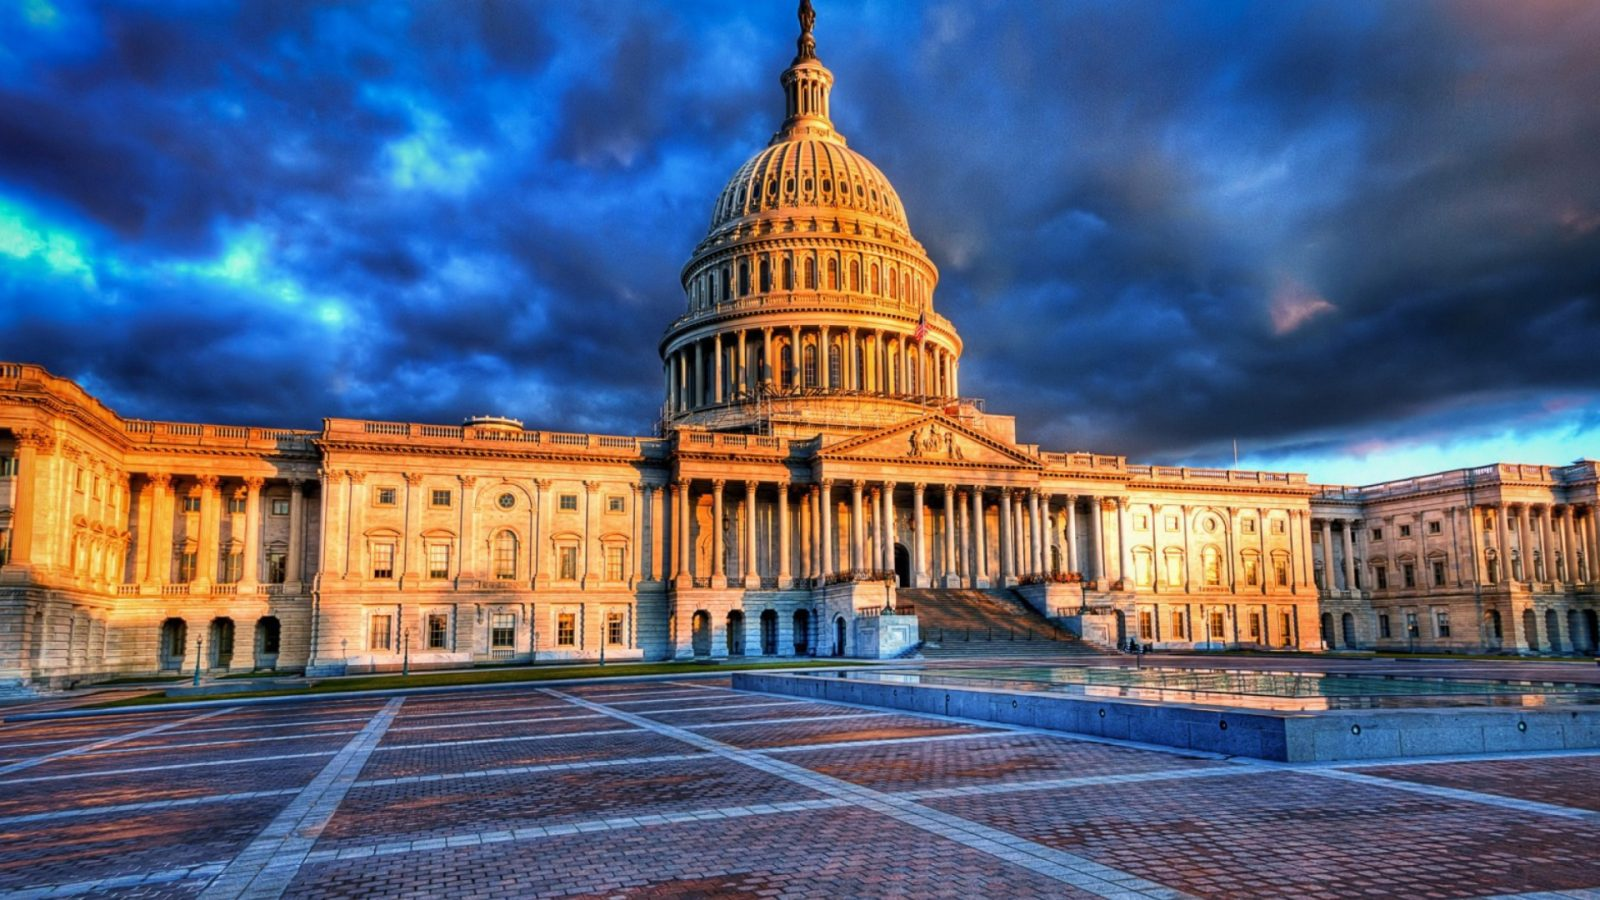 High Definition Wallpaper Of The Home Of United States Congress 1600x900